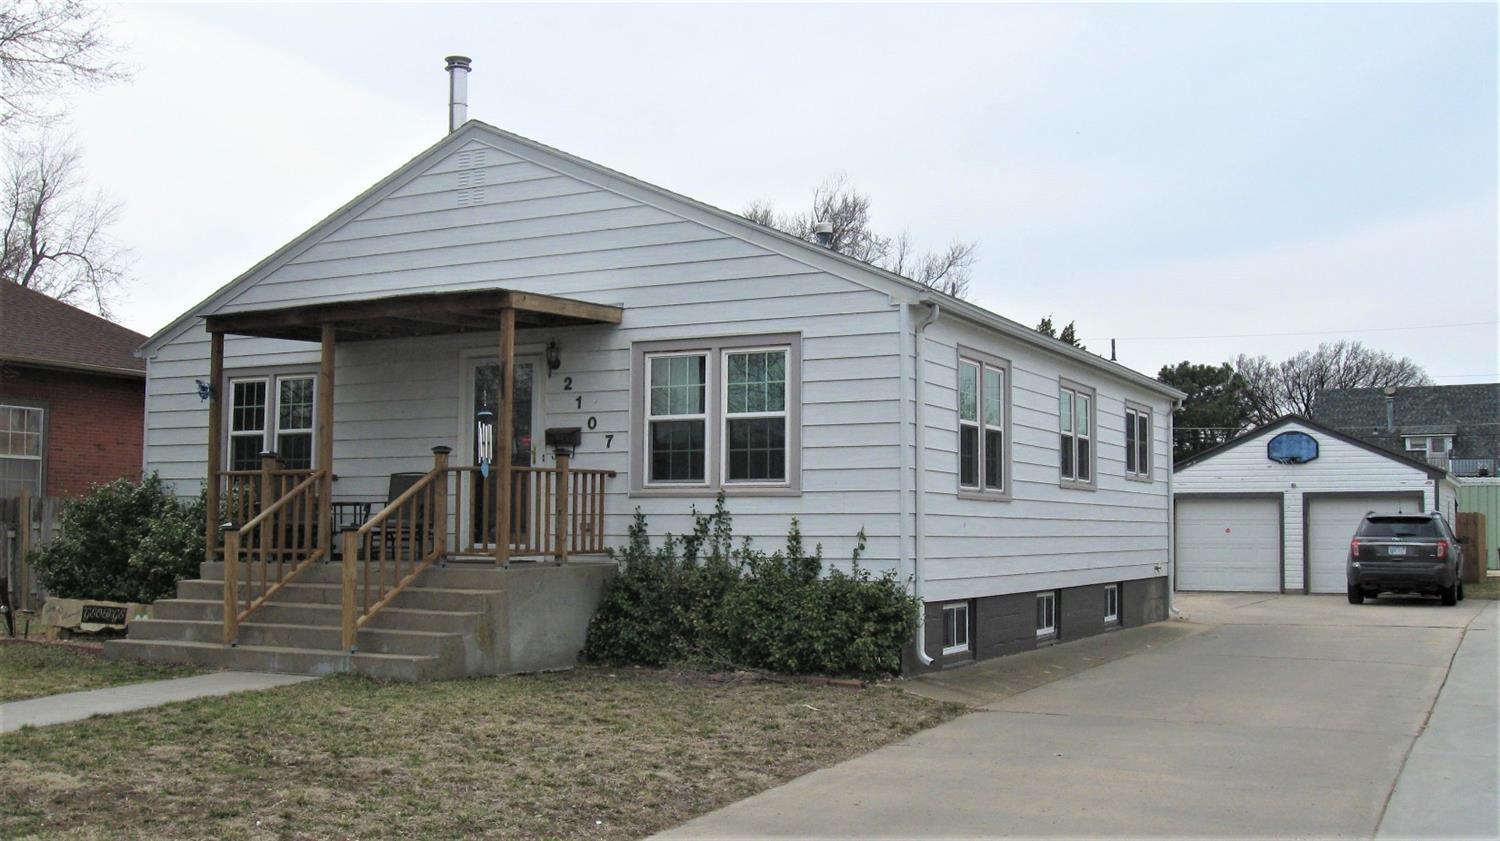 If your looking for a basement that has stayed dry you must see this steel sided home with open living room and dining room, updated kitchen with oak cabinets, 3 bedrooms on ground floor, finished basement with family room, 4th & 5th non-conforming bedrooms, 2nd bathroom, replacement windows, fenced yard, and double detached garage.